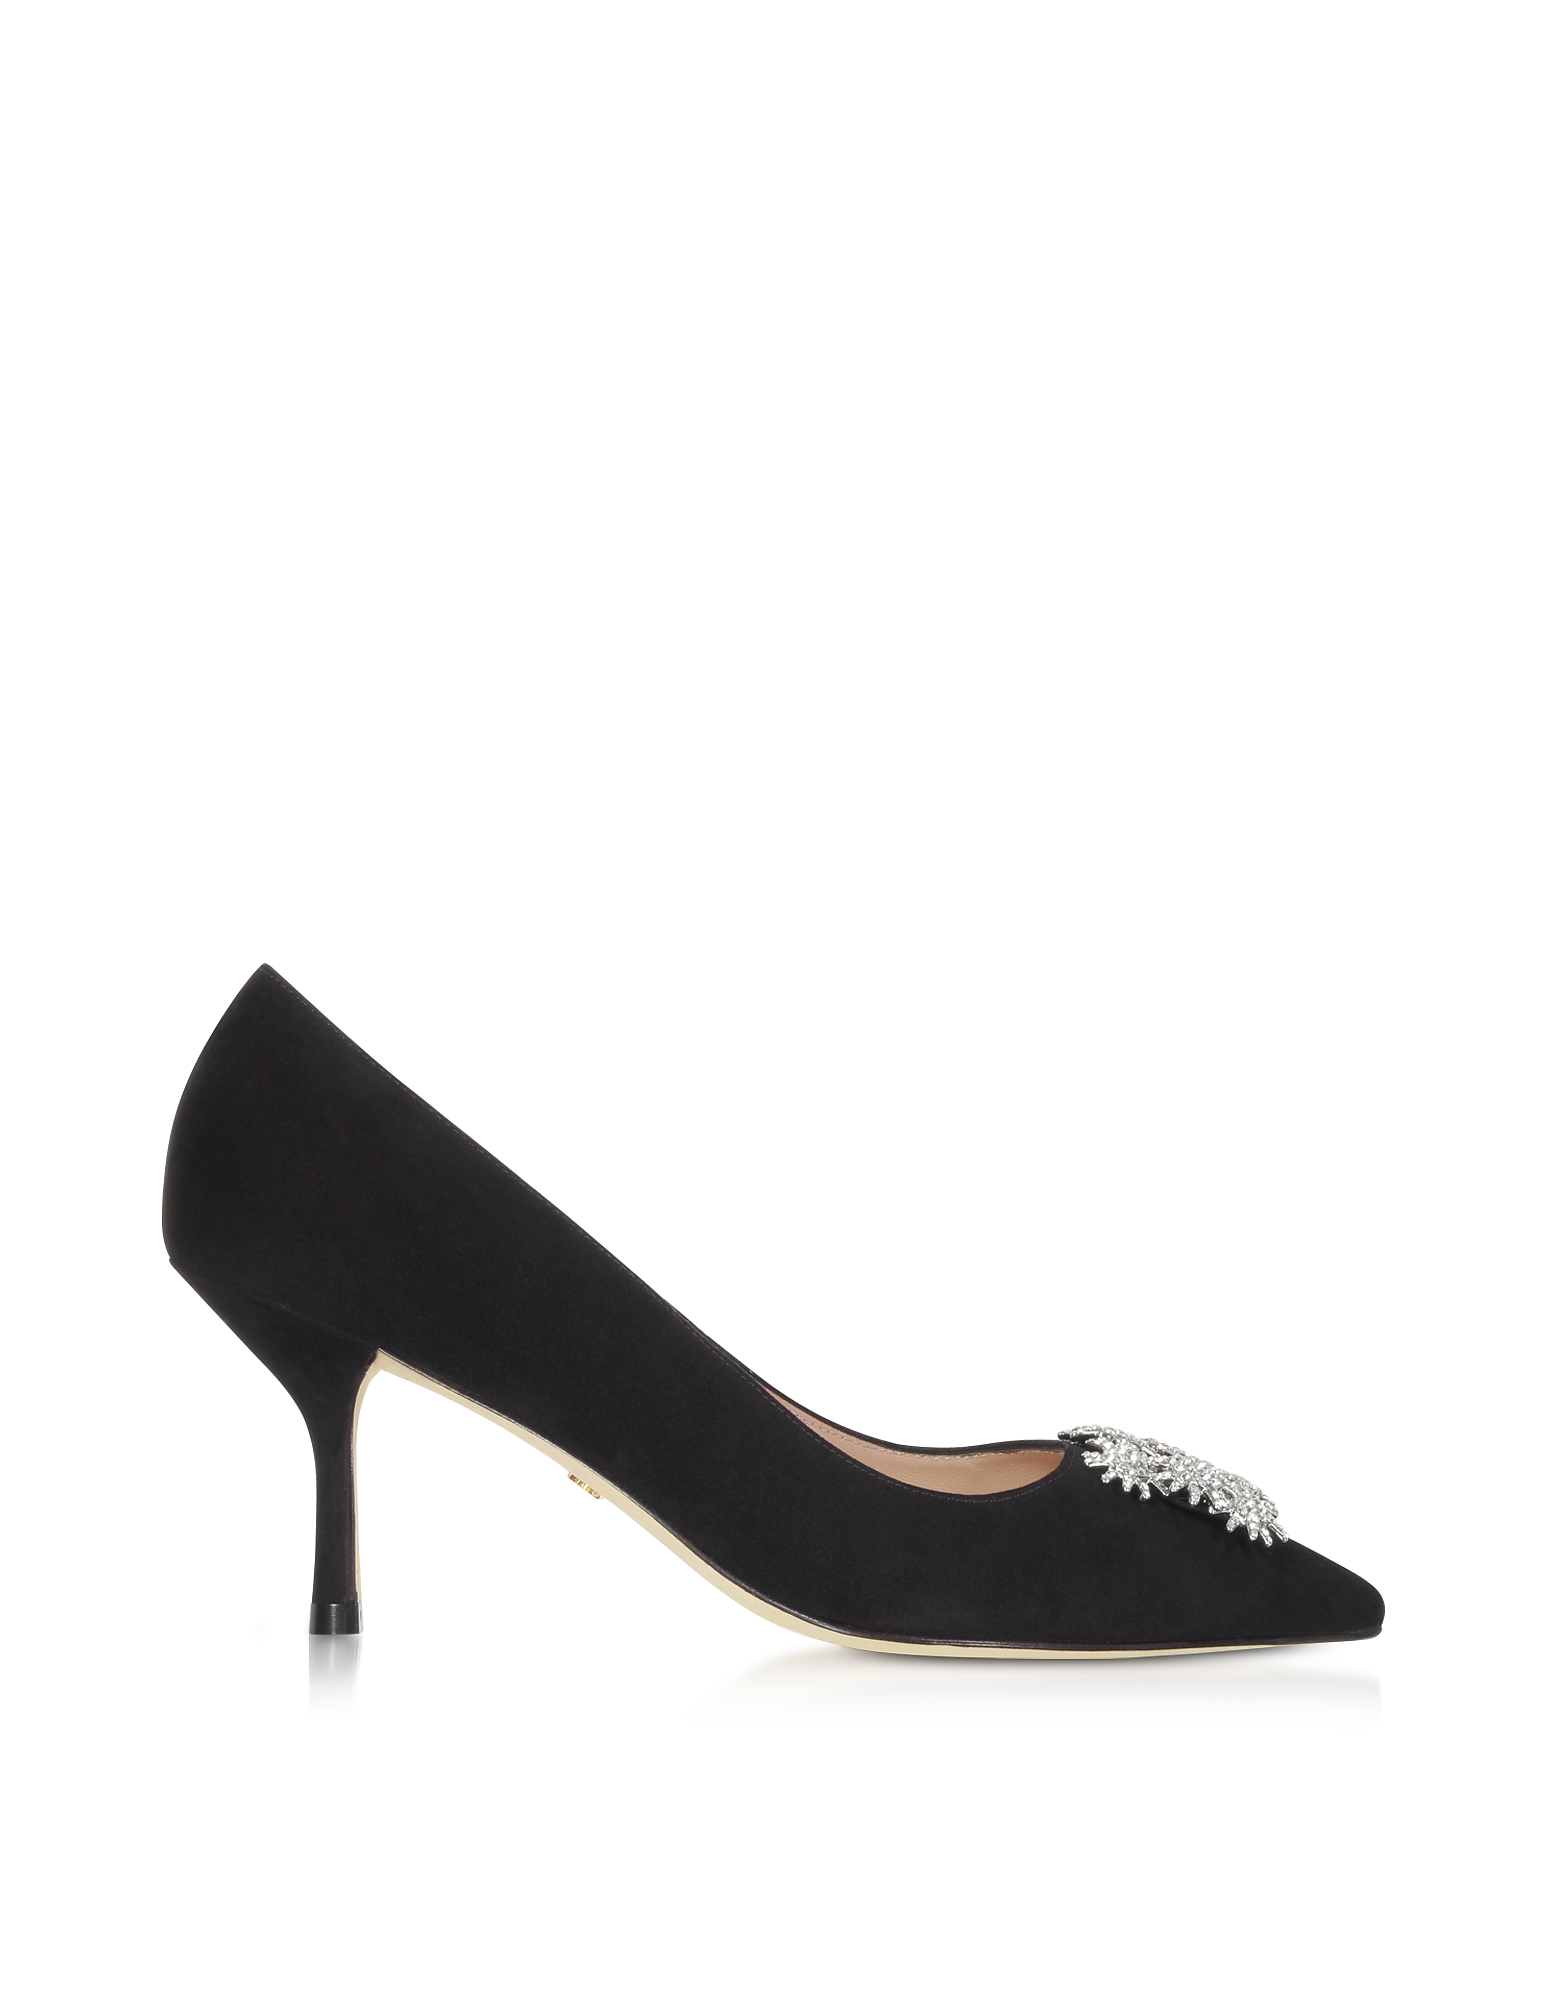 Black Suede Kelsey 75 Pumps